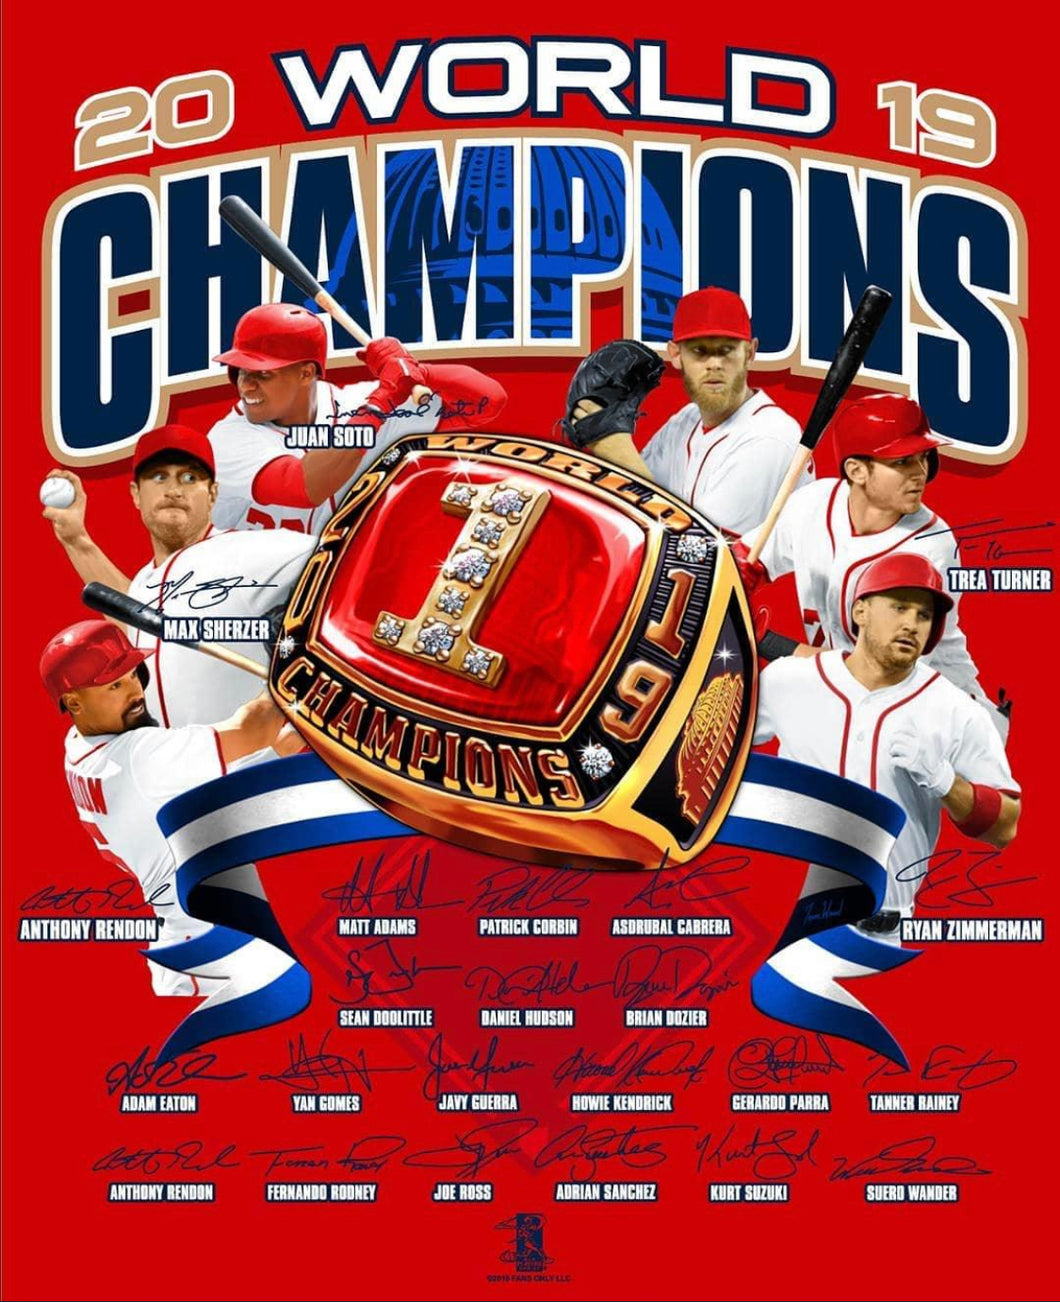 World Series 2019 Champs T-Shirt